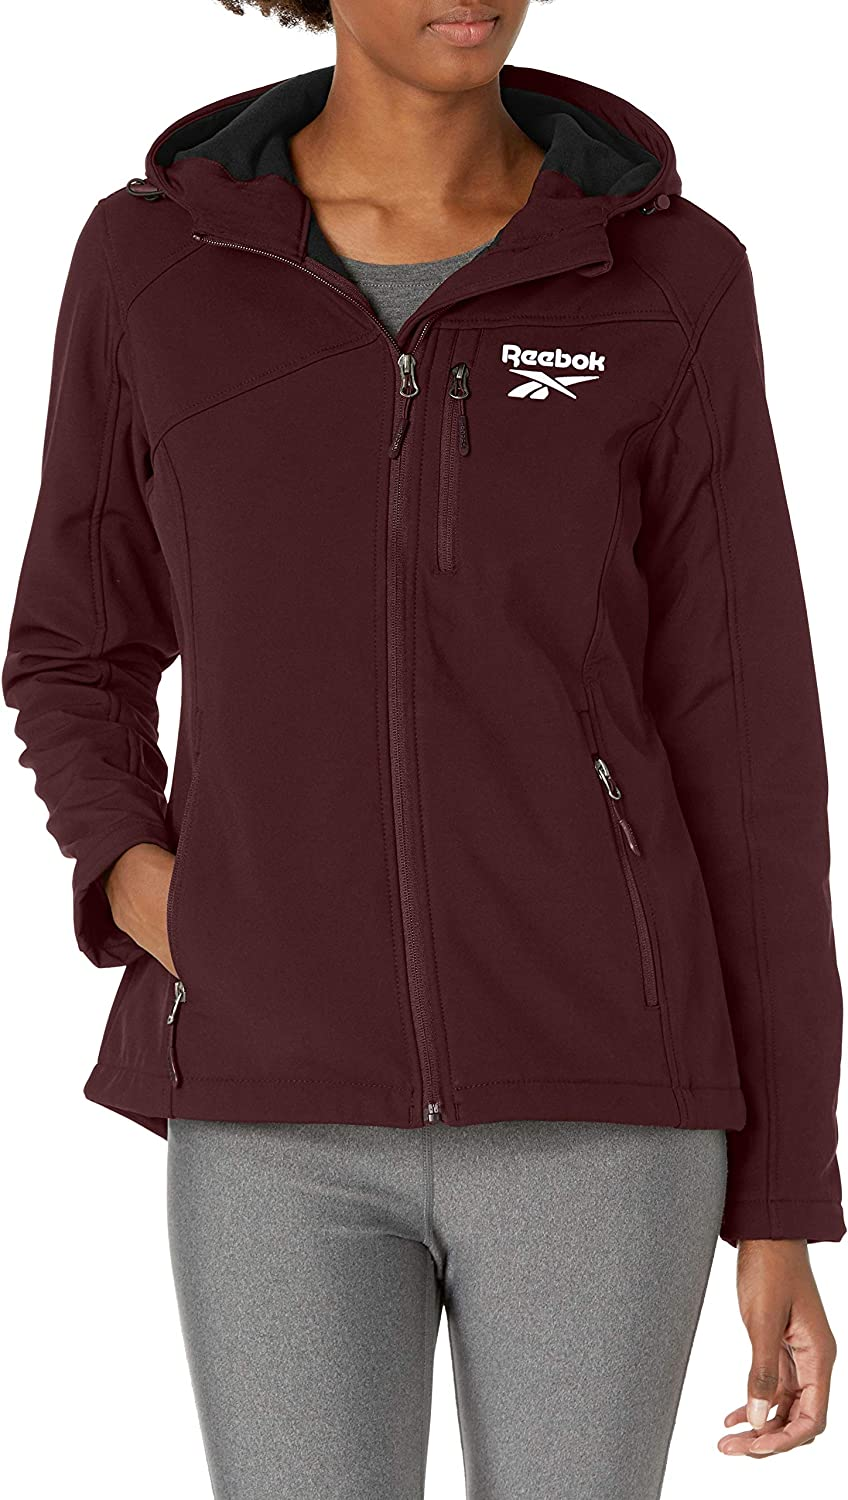 Max 88% OFF Reebok Women's excellence Soft Woven Jacket